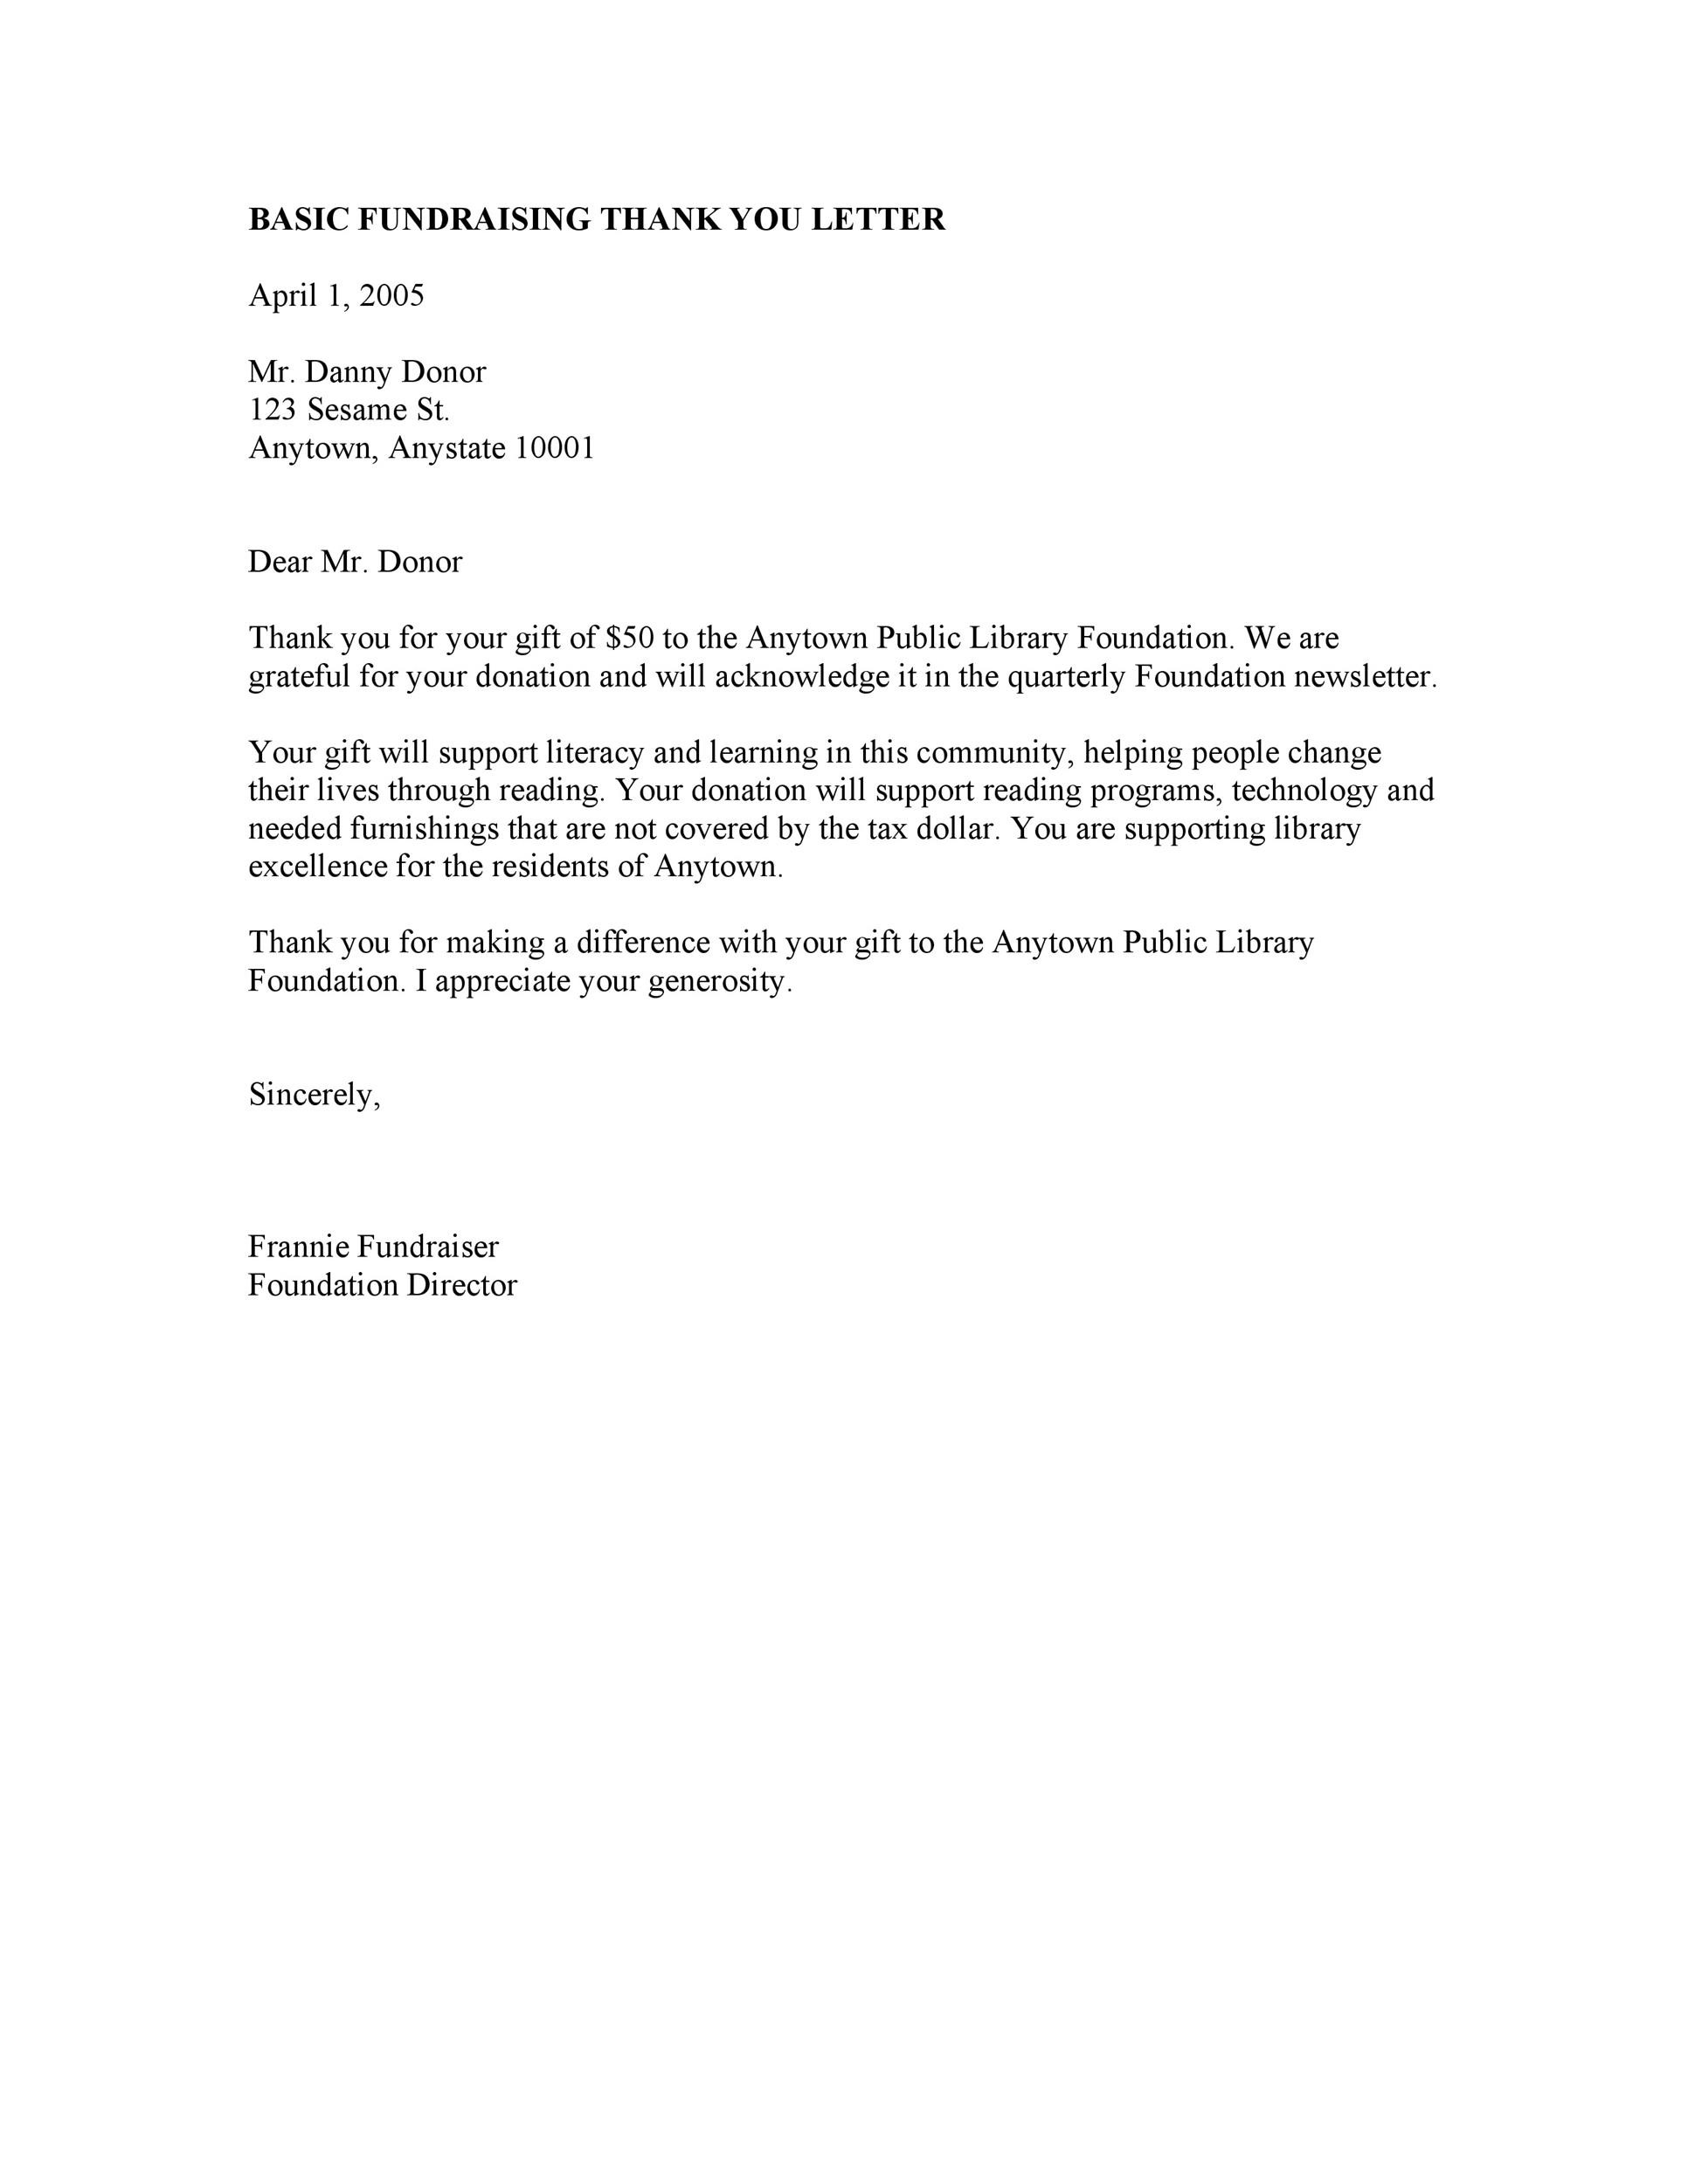 30 Thank you Letter Templates ScholarshipDonationBoss – Thank You Letter for Scholarship Award